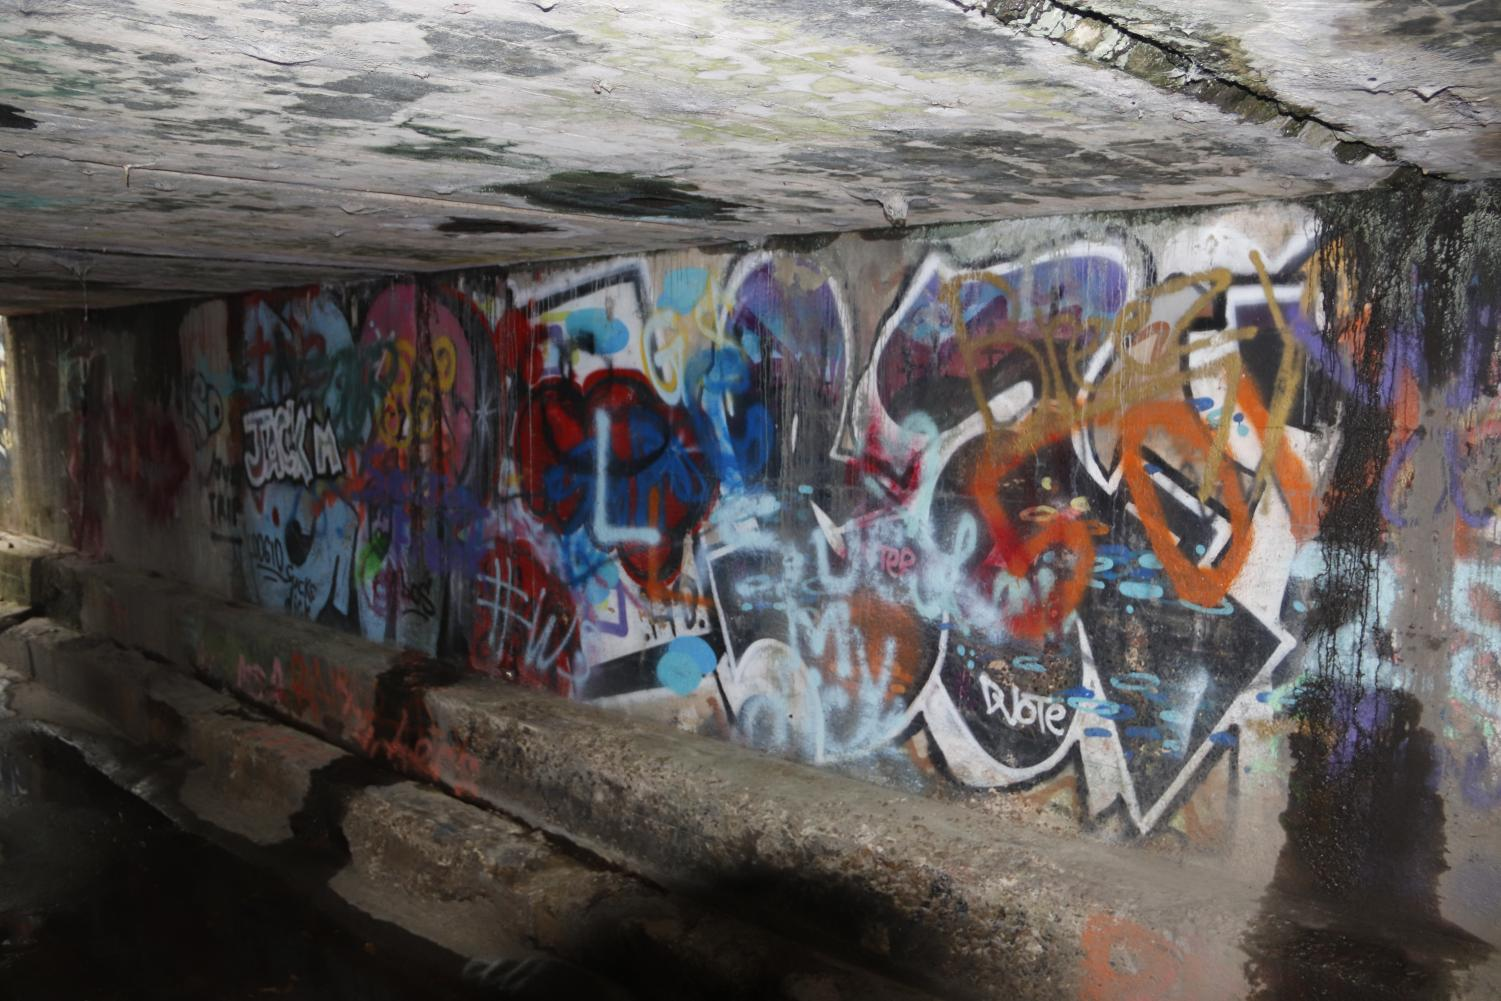 Graffiti art can be found under train tracks in Hammond. Although it can be an attraction, artists should consider the property of private and public businesses before creating their art.